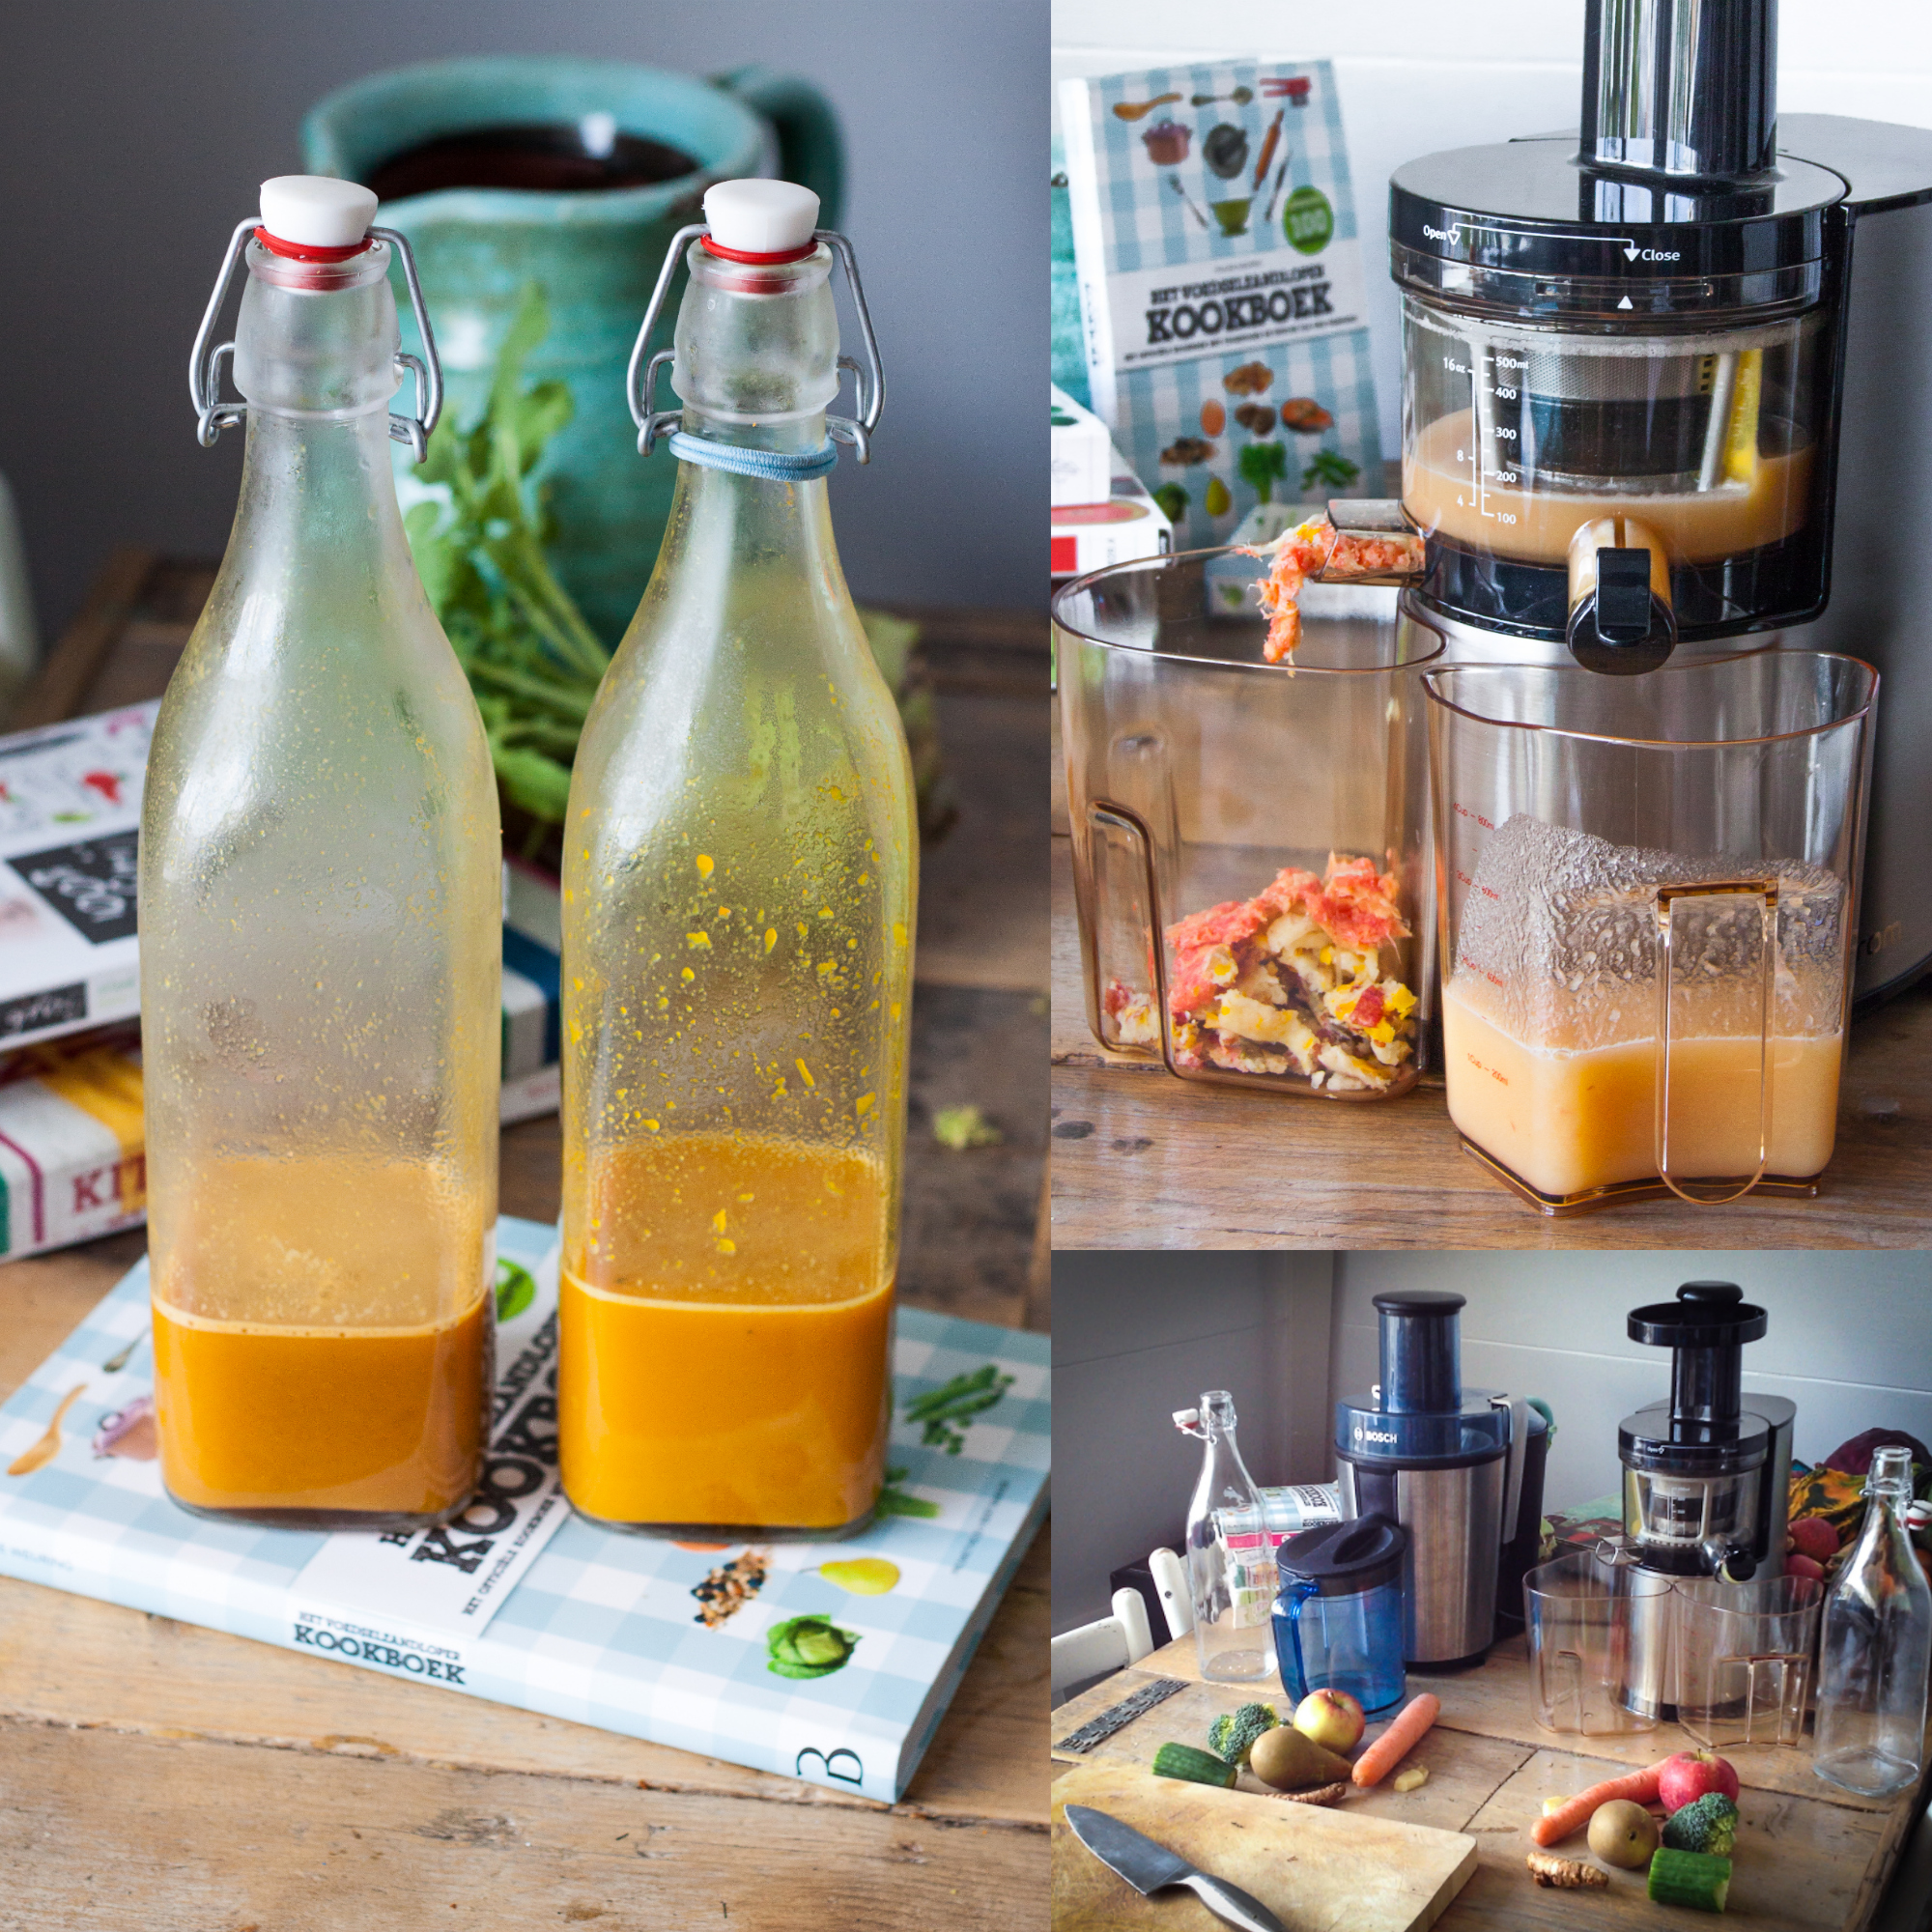 Slow Press Juicer Recipes : Slow Juice Review by Rosalie s Recipes // #slowjuicer #review #huromhf